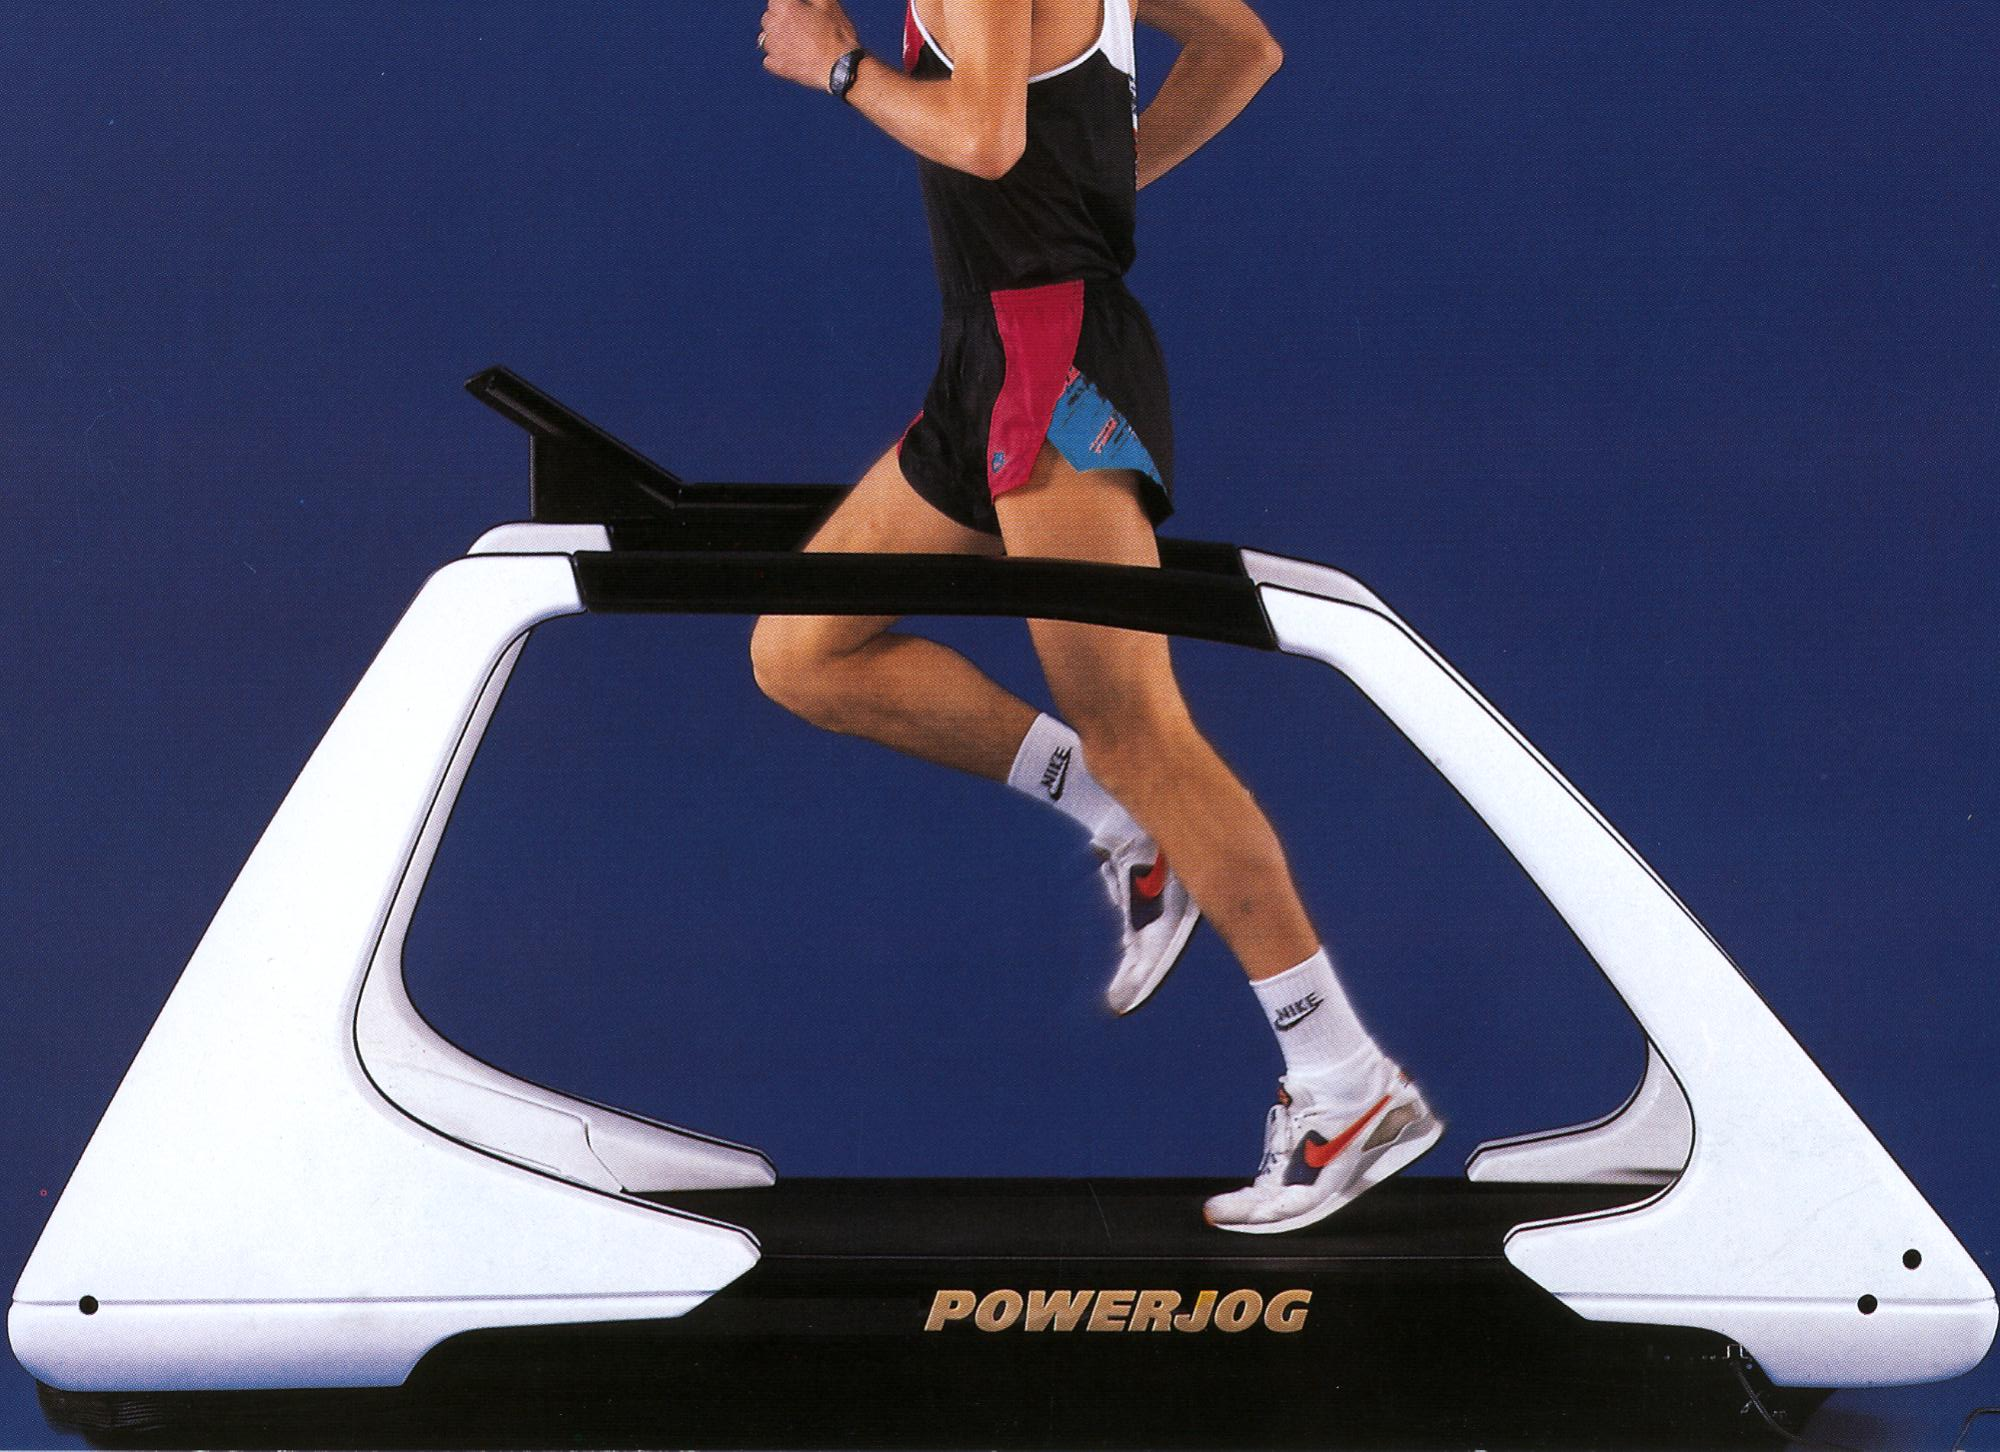 Treadmill Electric Powerjog Prop Hire And Deliver